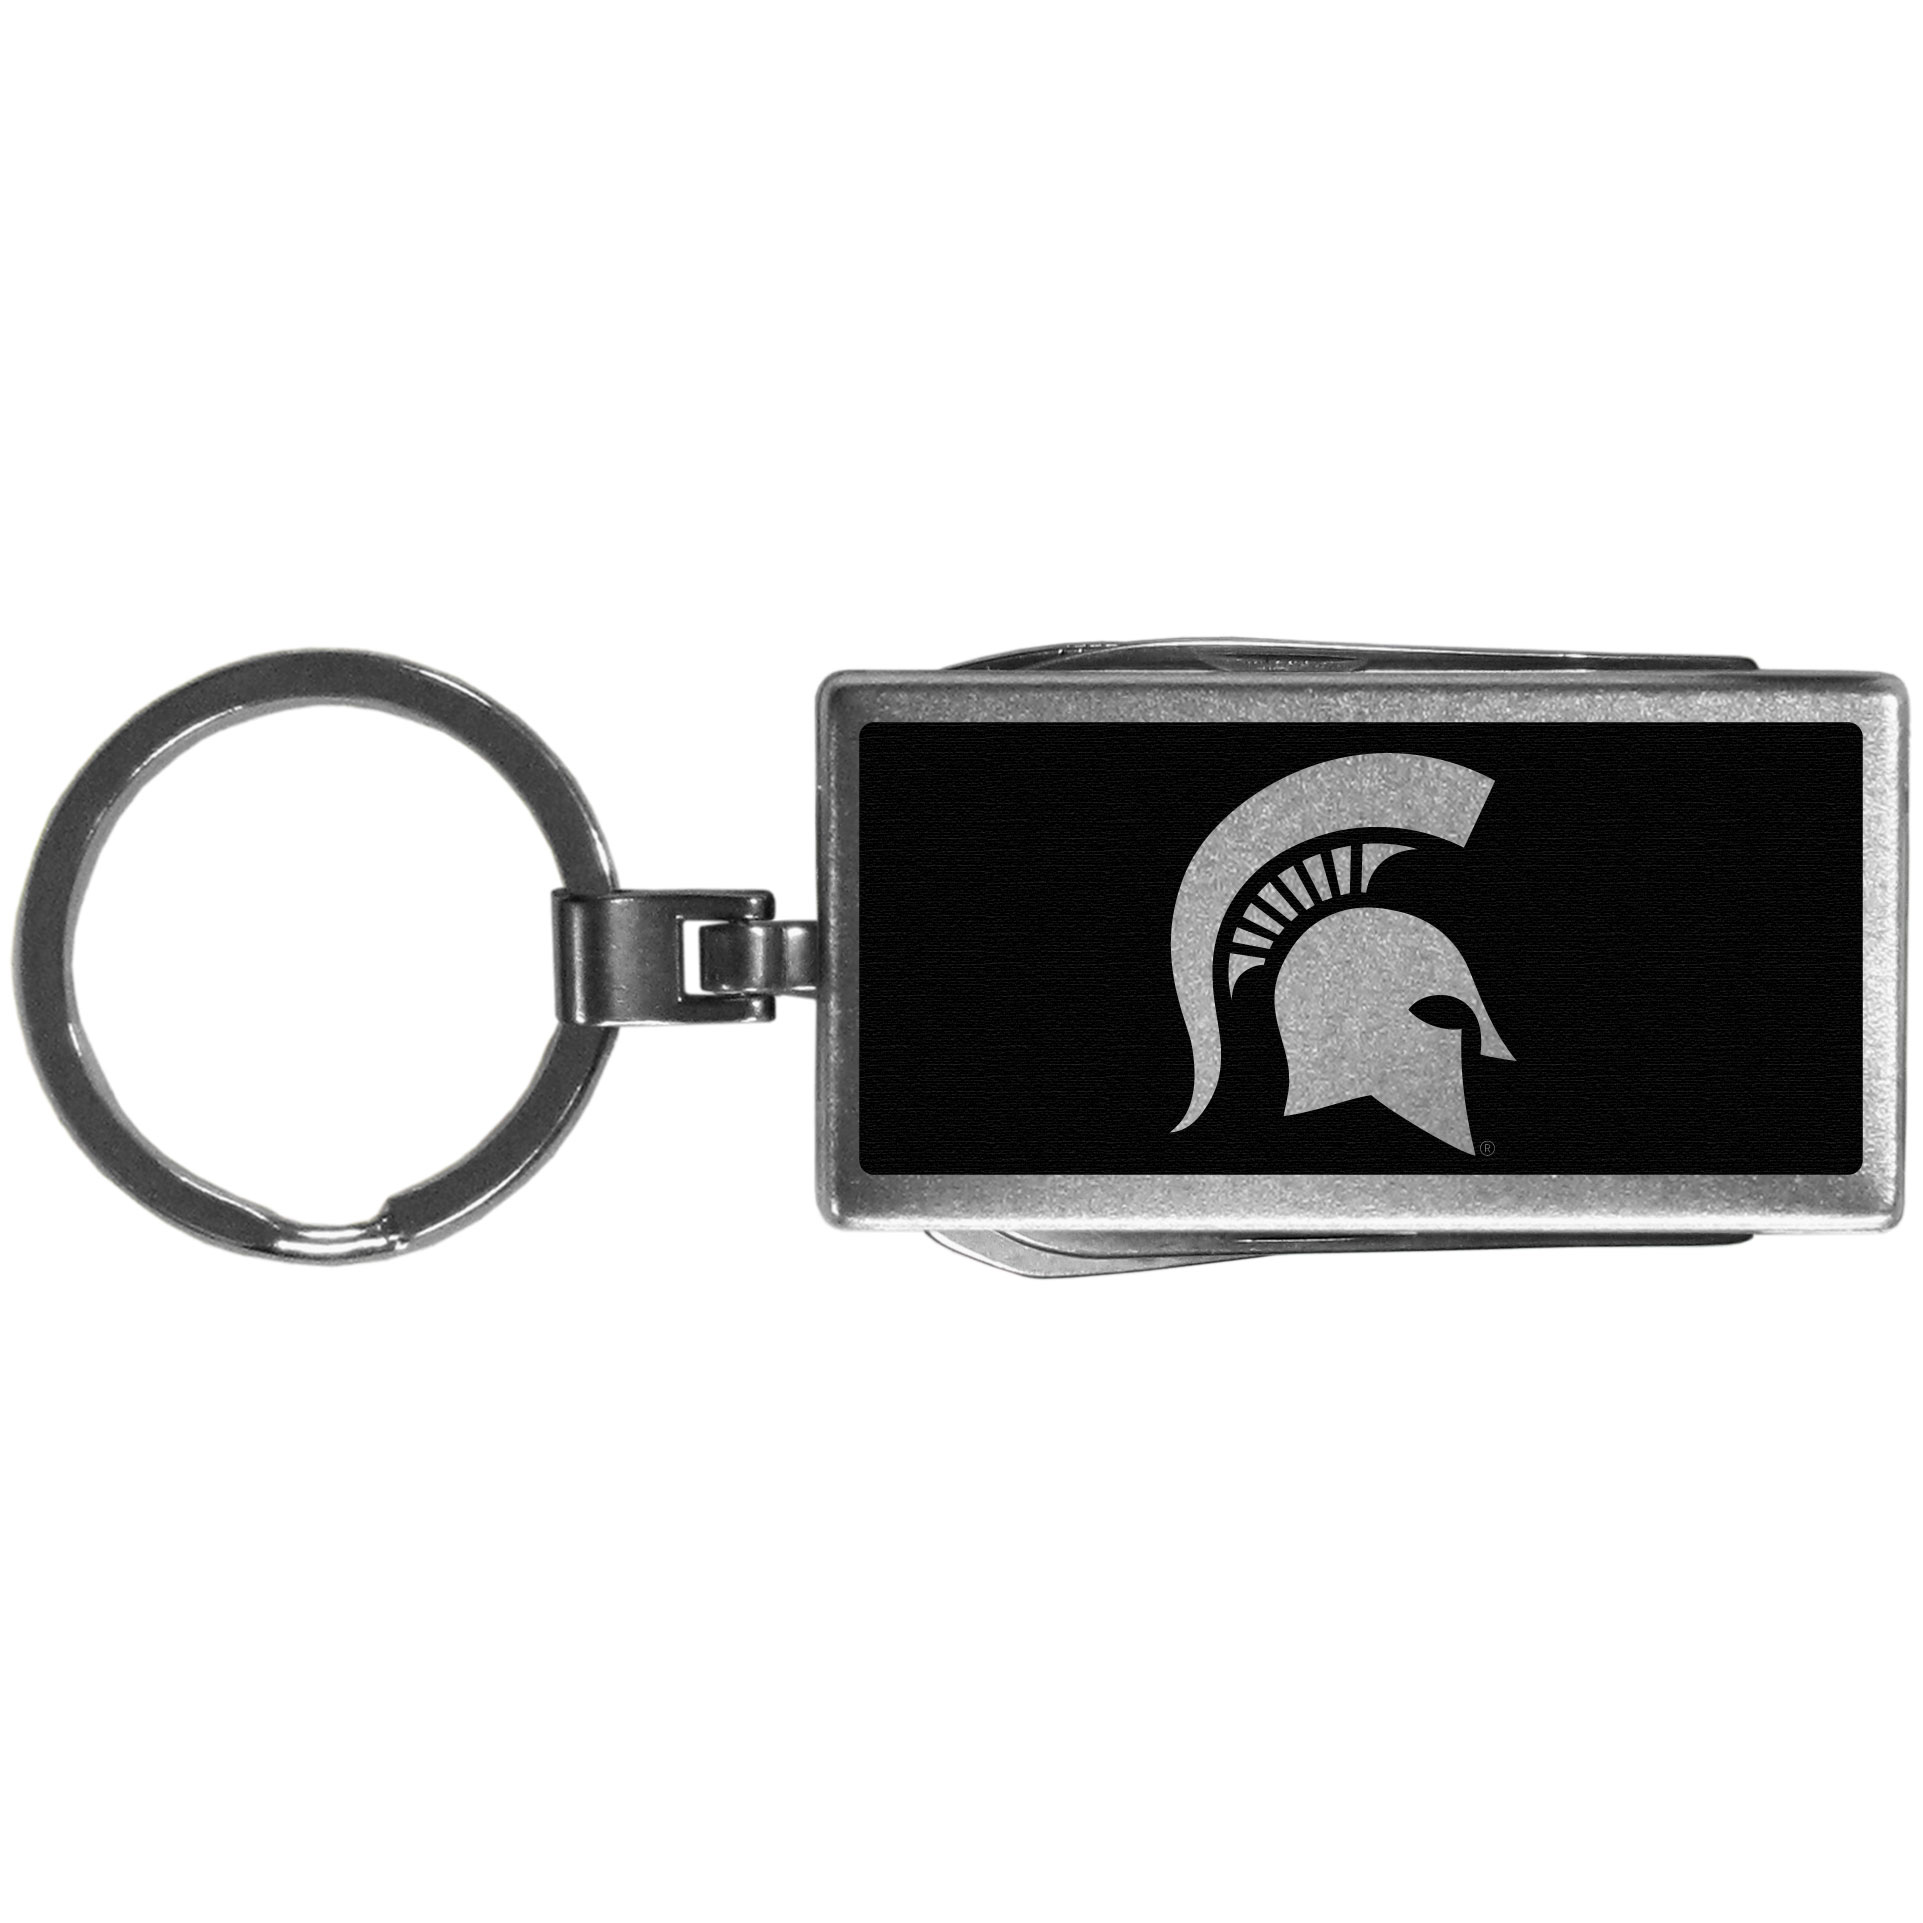 Michigan St. Spartans Multi-tool Key Chain, Black - Be the hero at the tailgate, camping, or on a Friday night with your Michigan St. Spartans Multi-Tool Keychain which comes complete with bottle opener, scissors, knife, nail file and screw driver. Be it opening a package or a beverage Siskiyou's Multi-Tool Keychain goes wherever your keys do. The keychain hangs at 4 inches long when closed.